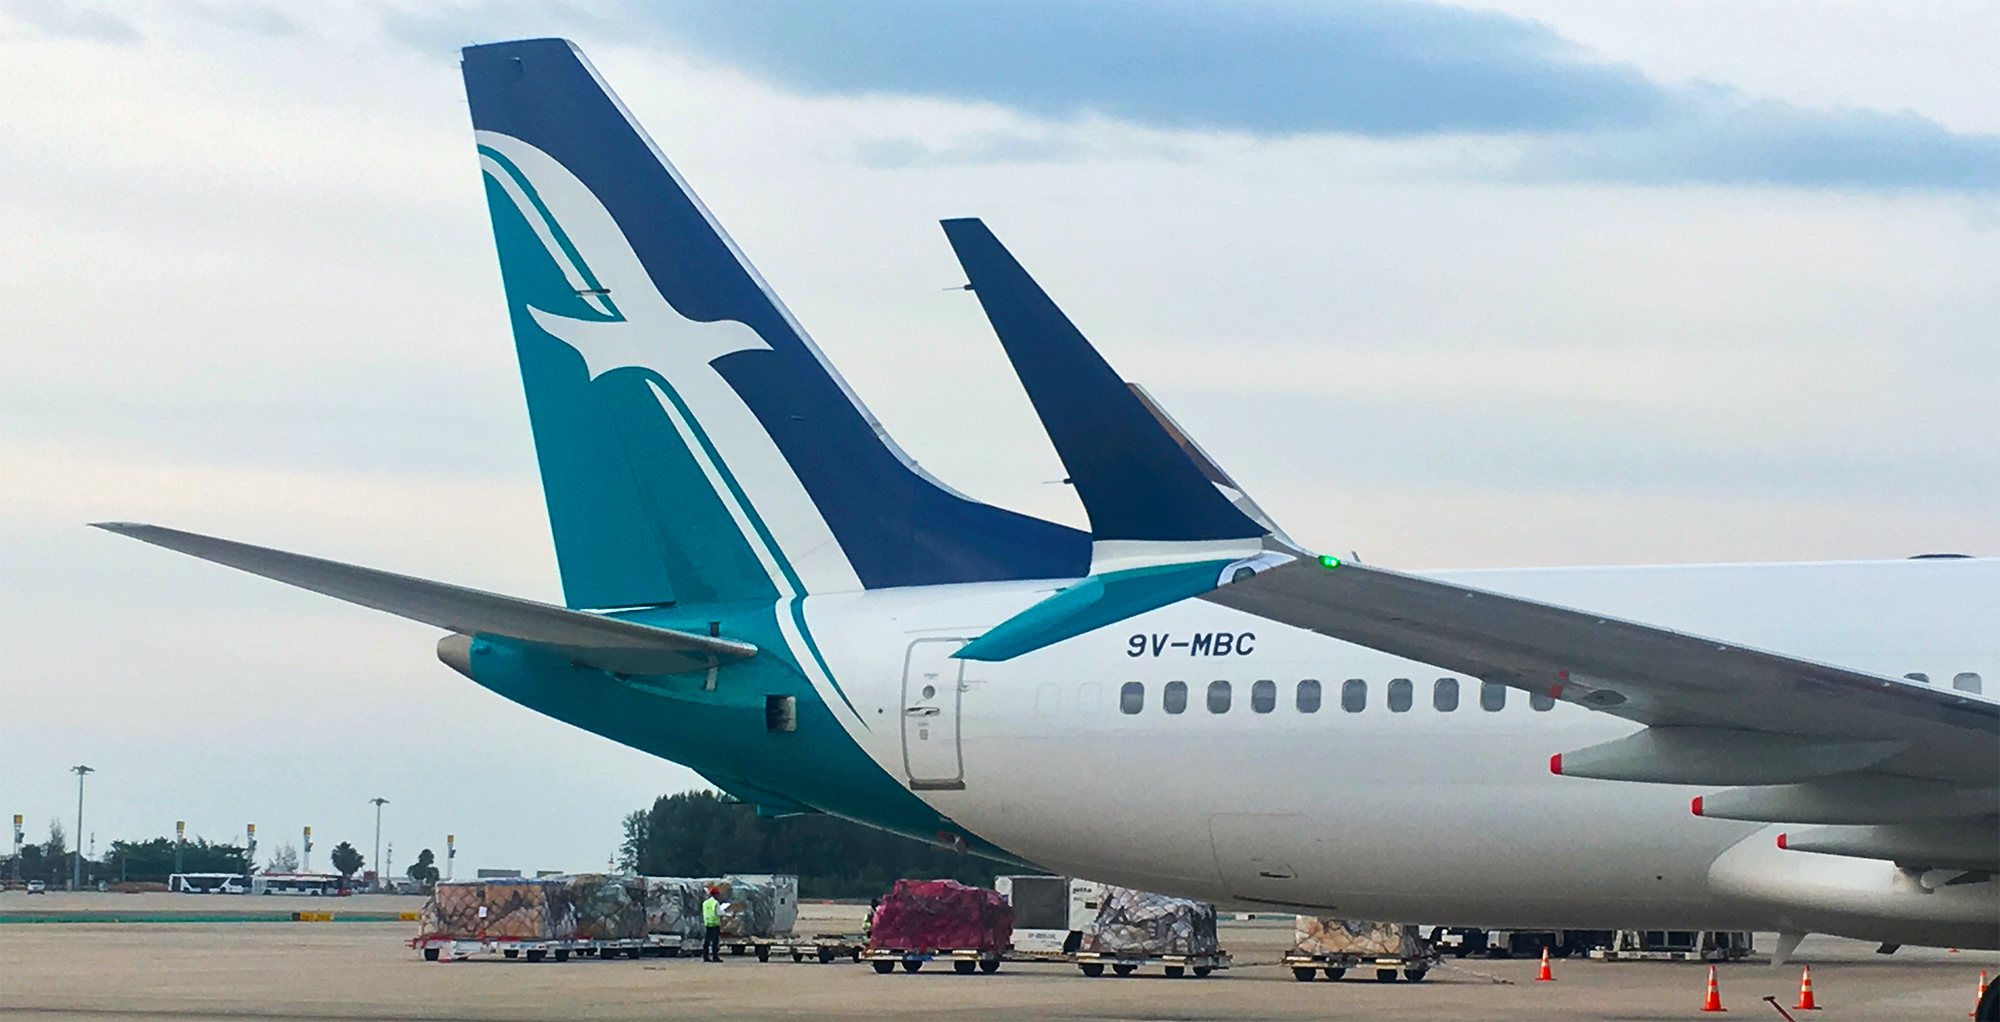 Where are the SilkAir 737 MAX aircraft flying? – Mainly Miles